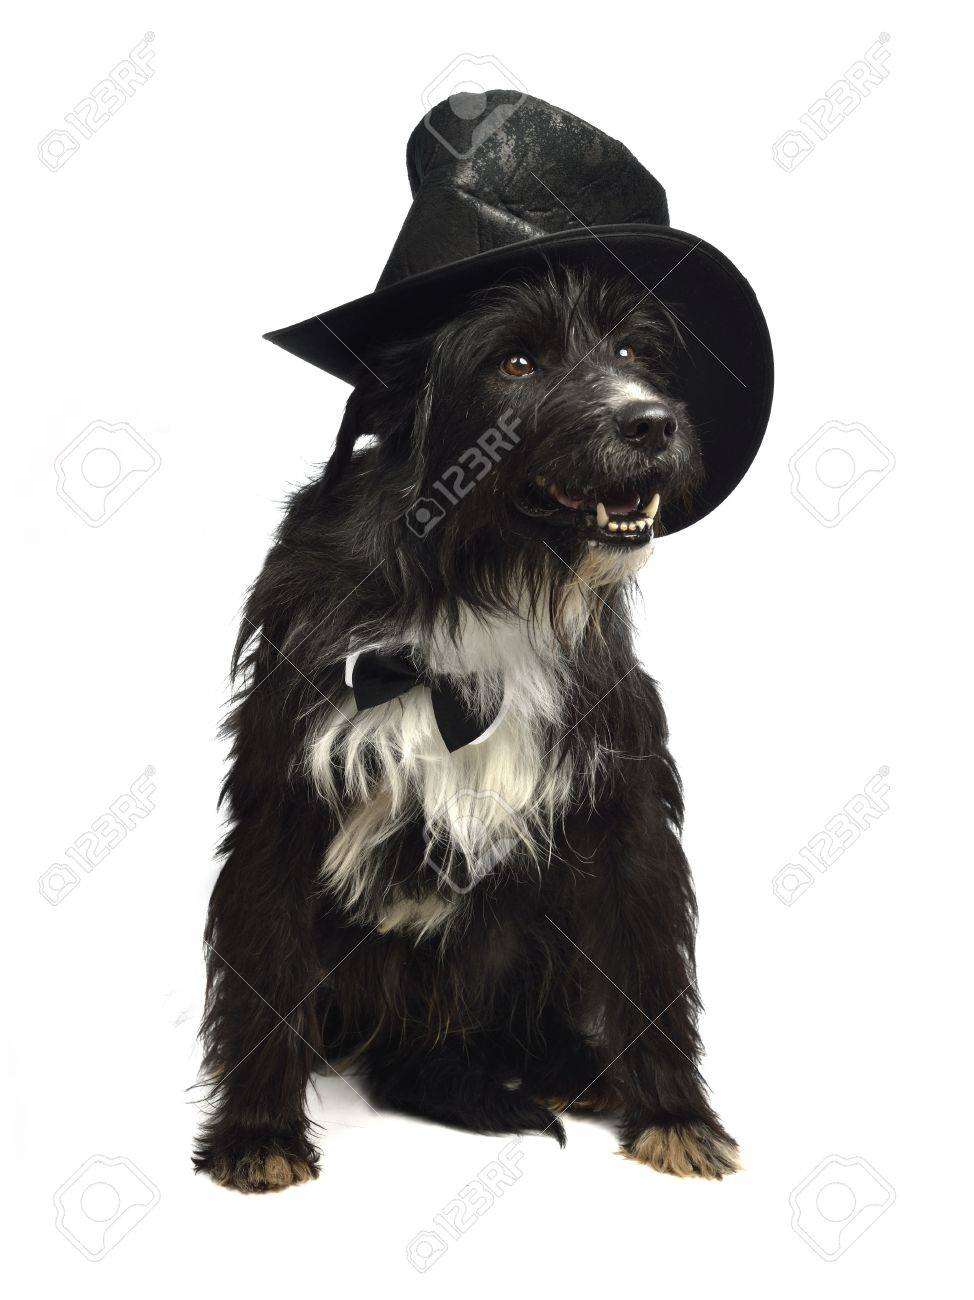 Gentleman dog with bow tie and top hat isolated Stock Photo - 13004444